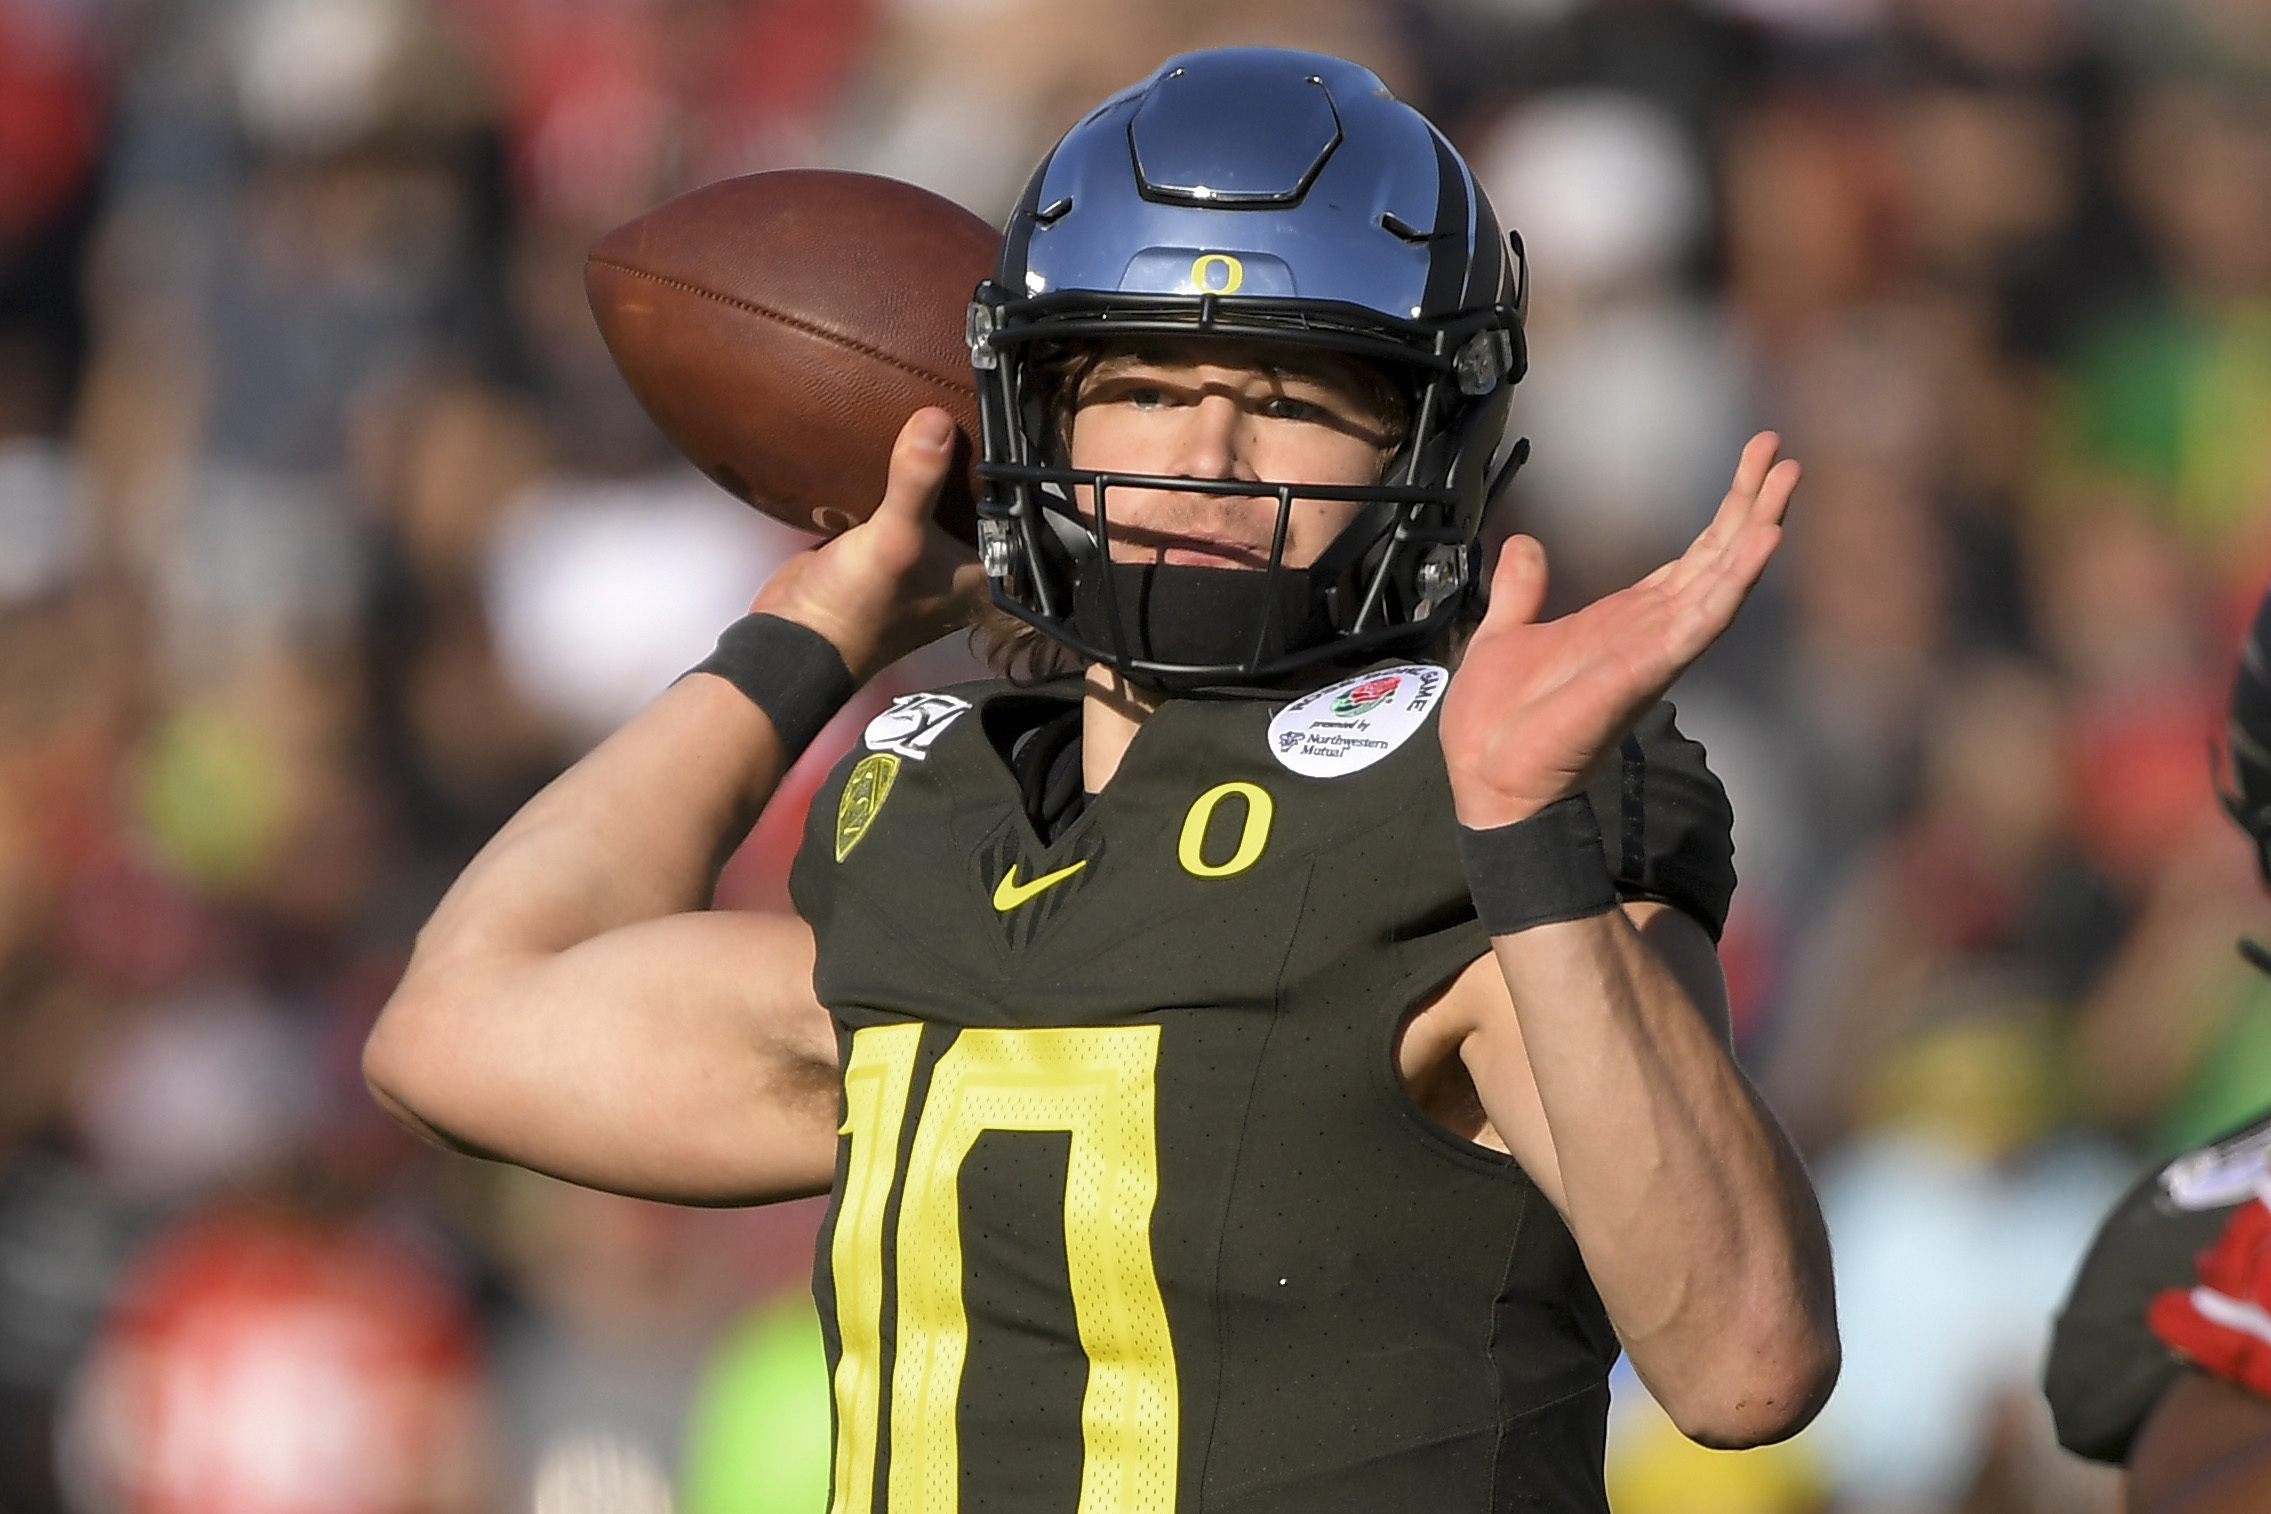 Chargers take QB Justin Herbert 6th, LB Kenneth Murray 23rd